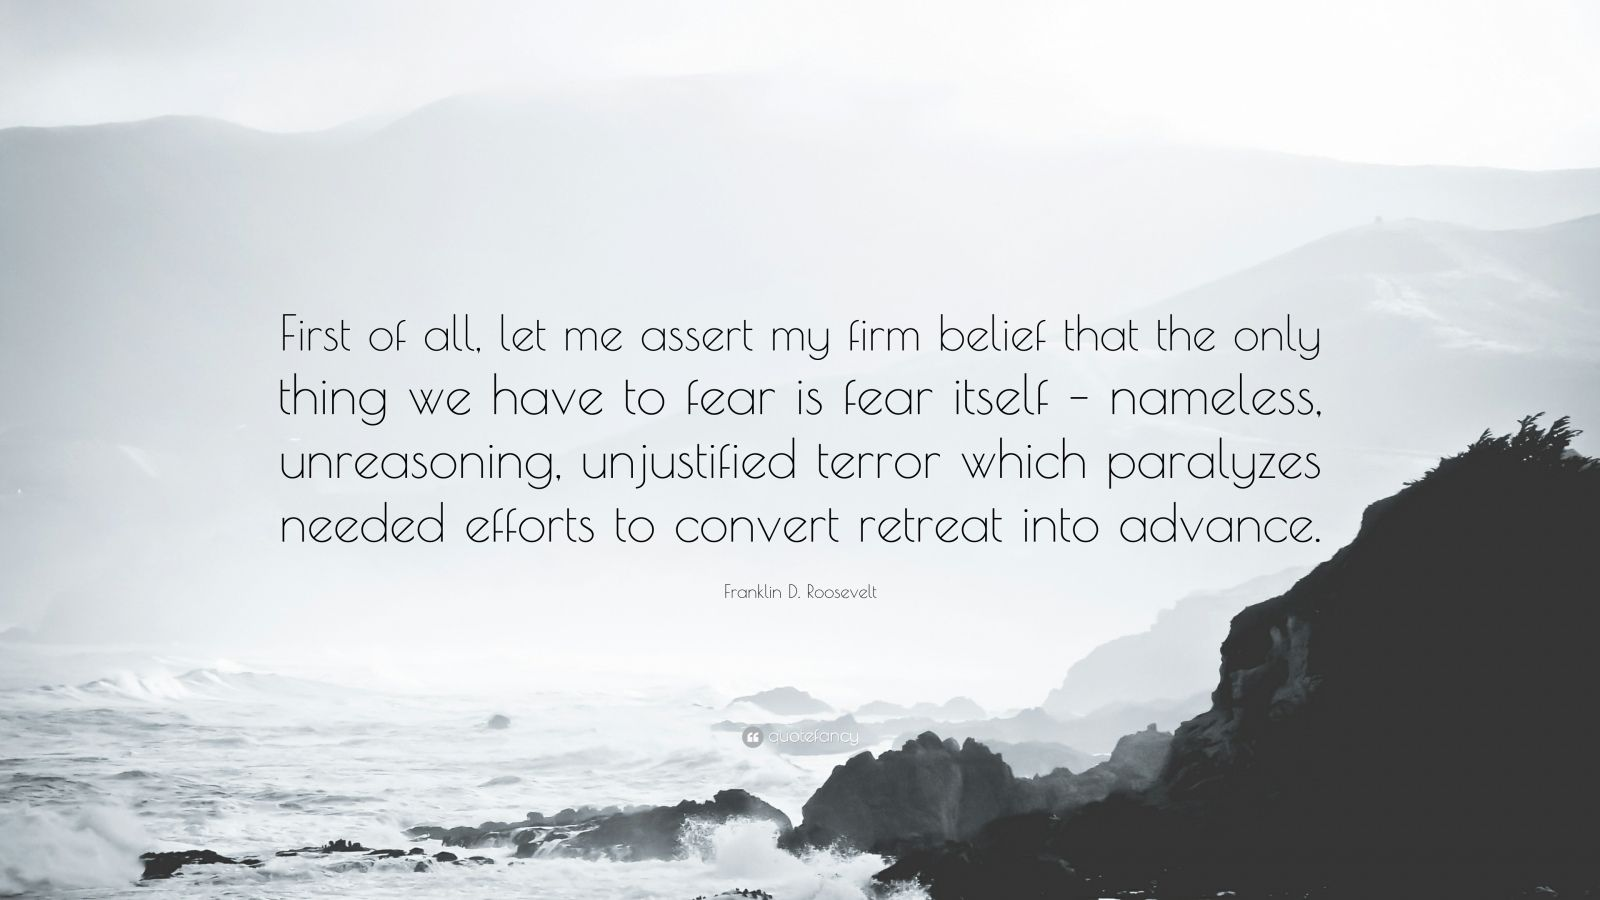 """Franklin D. Roosevelt Quote: """"First of all, let me assert my firm belief that the only thing we have to fear is fear itself – nameless, unreasoning, unjustified terror which paralyzes needed efforts to convert retreat into advance."""""""